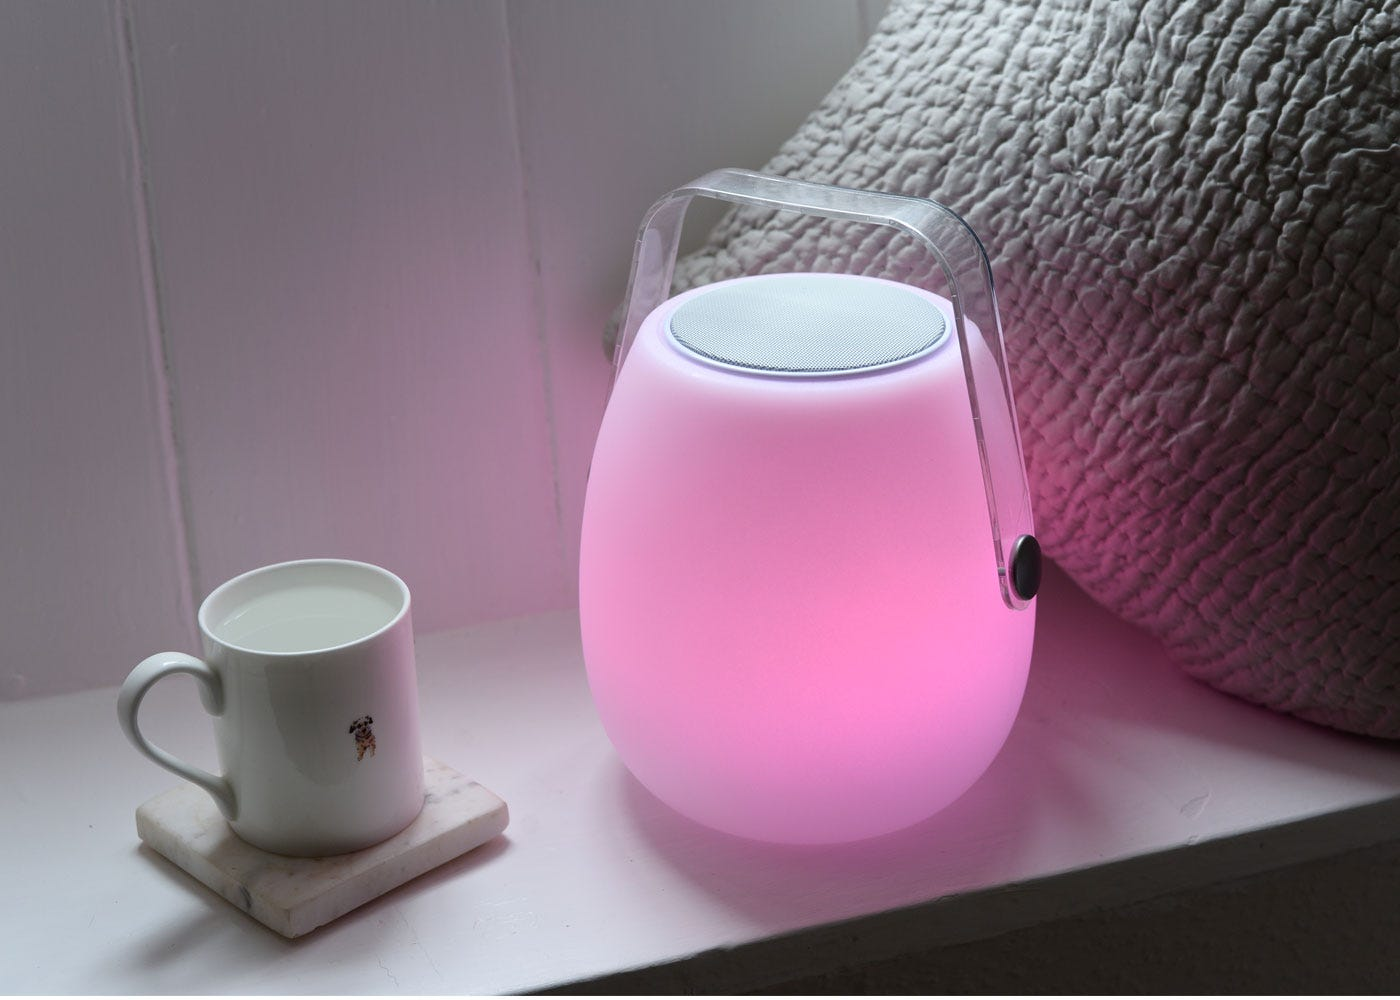 As shown: Ava portable speaker with the pink option on (brighter intensity).